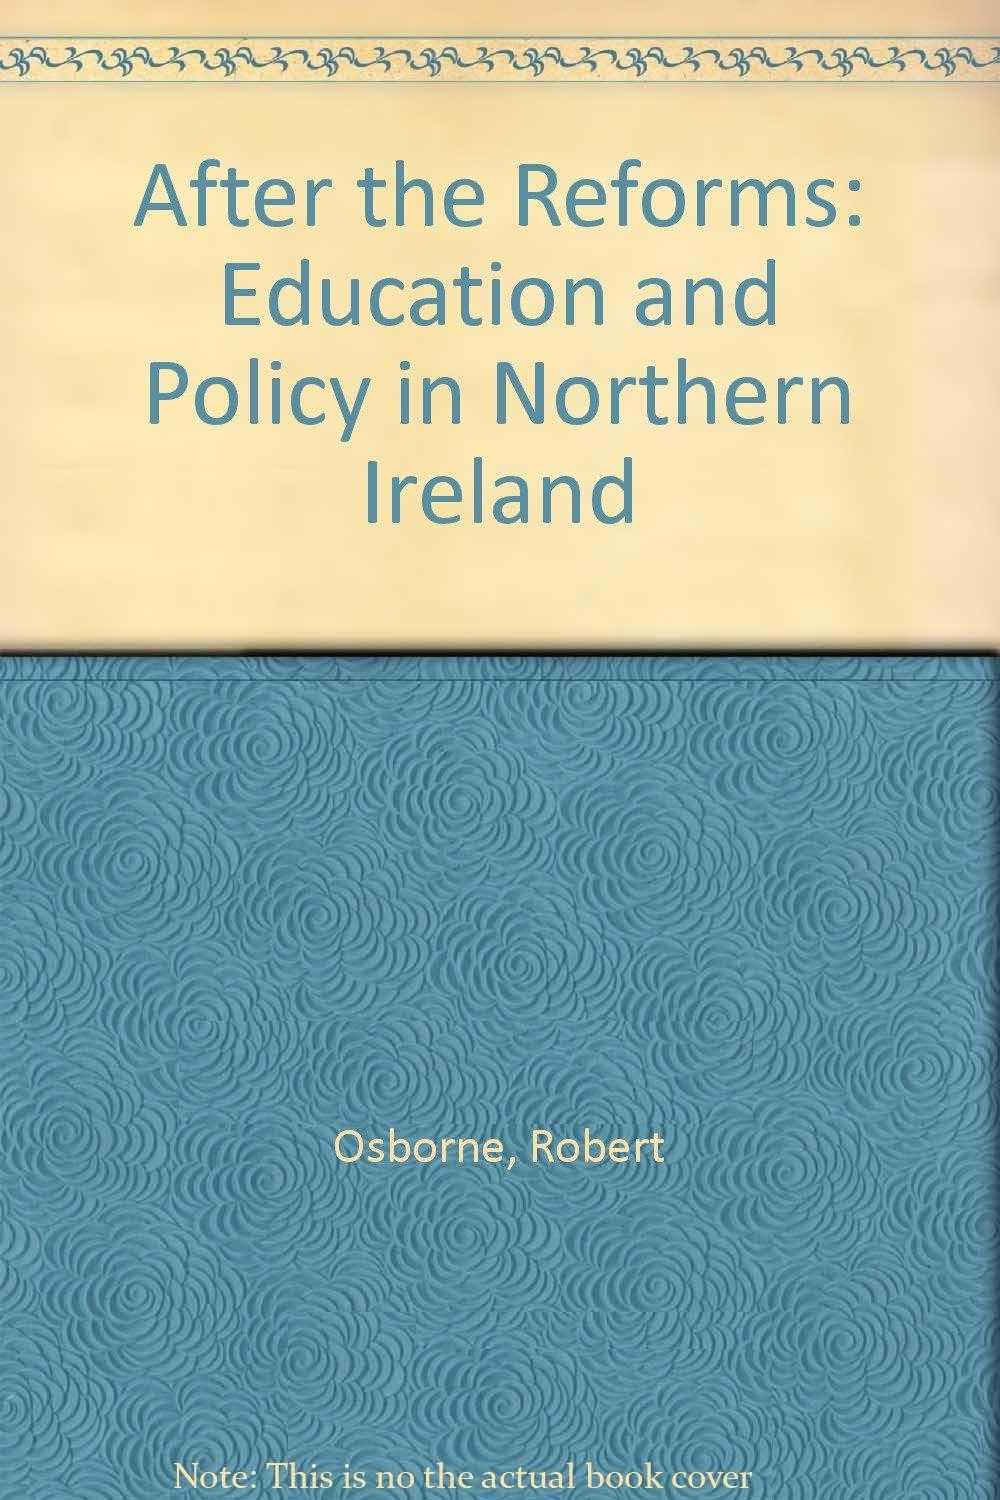 After the Reforms: Education and Policy in Northern Ireland, etc. (Editor)